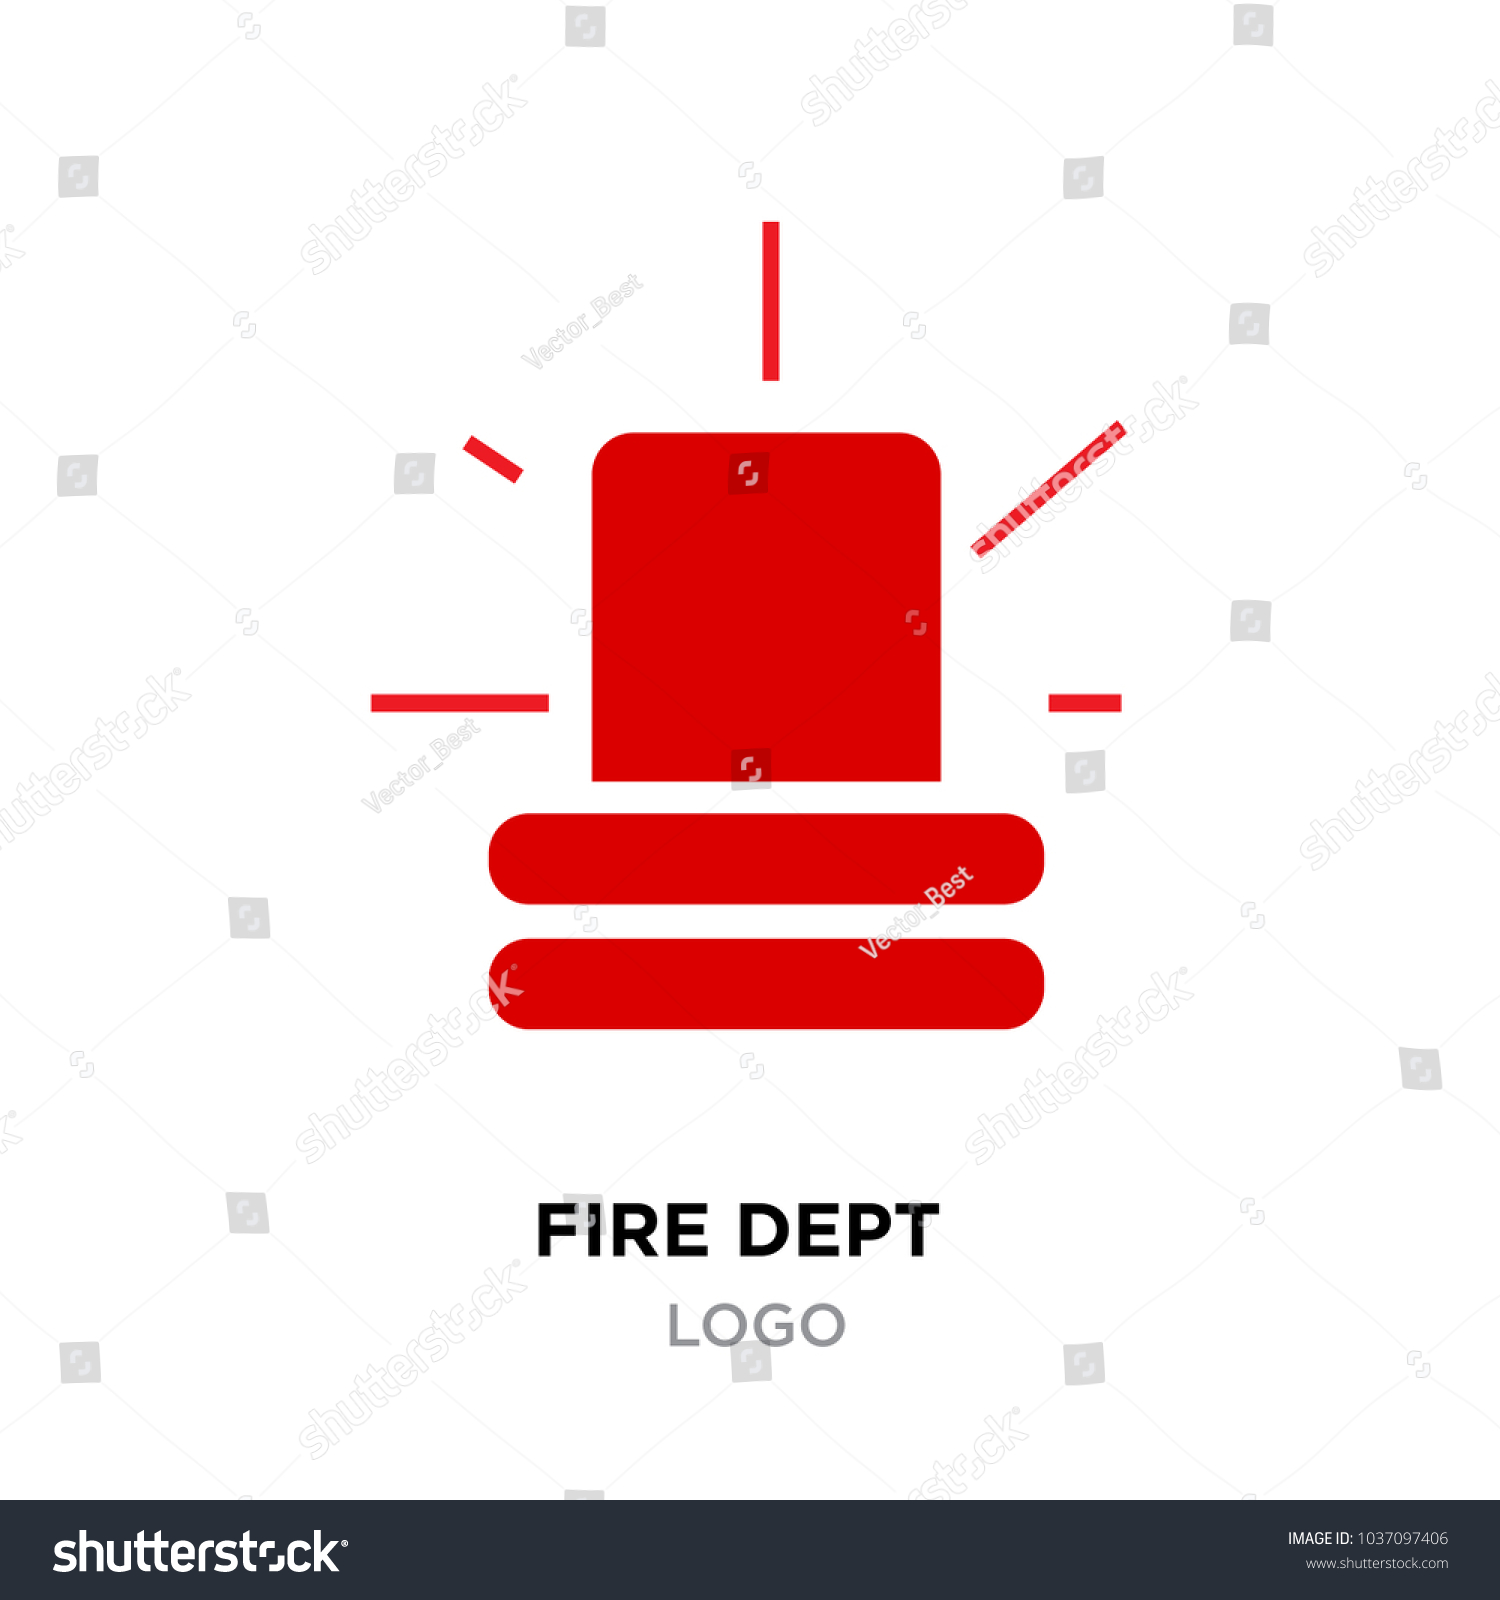 Fire dept logo police red flasher stock vector 1037097406 shutterstock fire dept logo police red flasher siren sign flat style flasher light emergency department buycottarizona Images